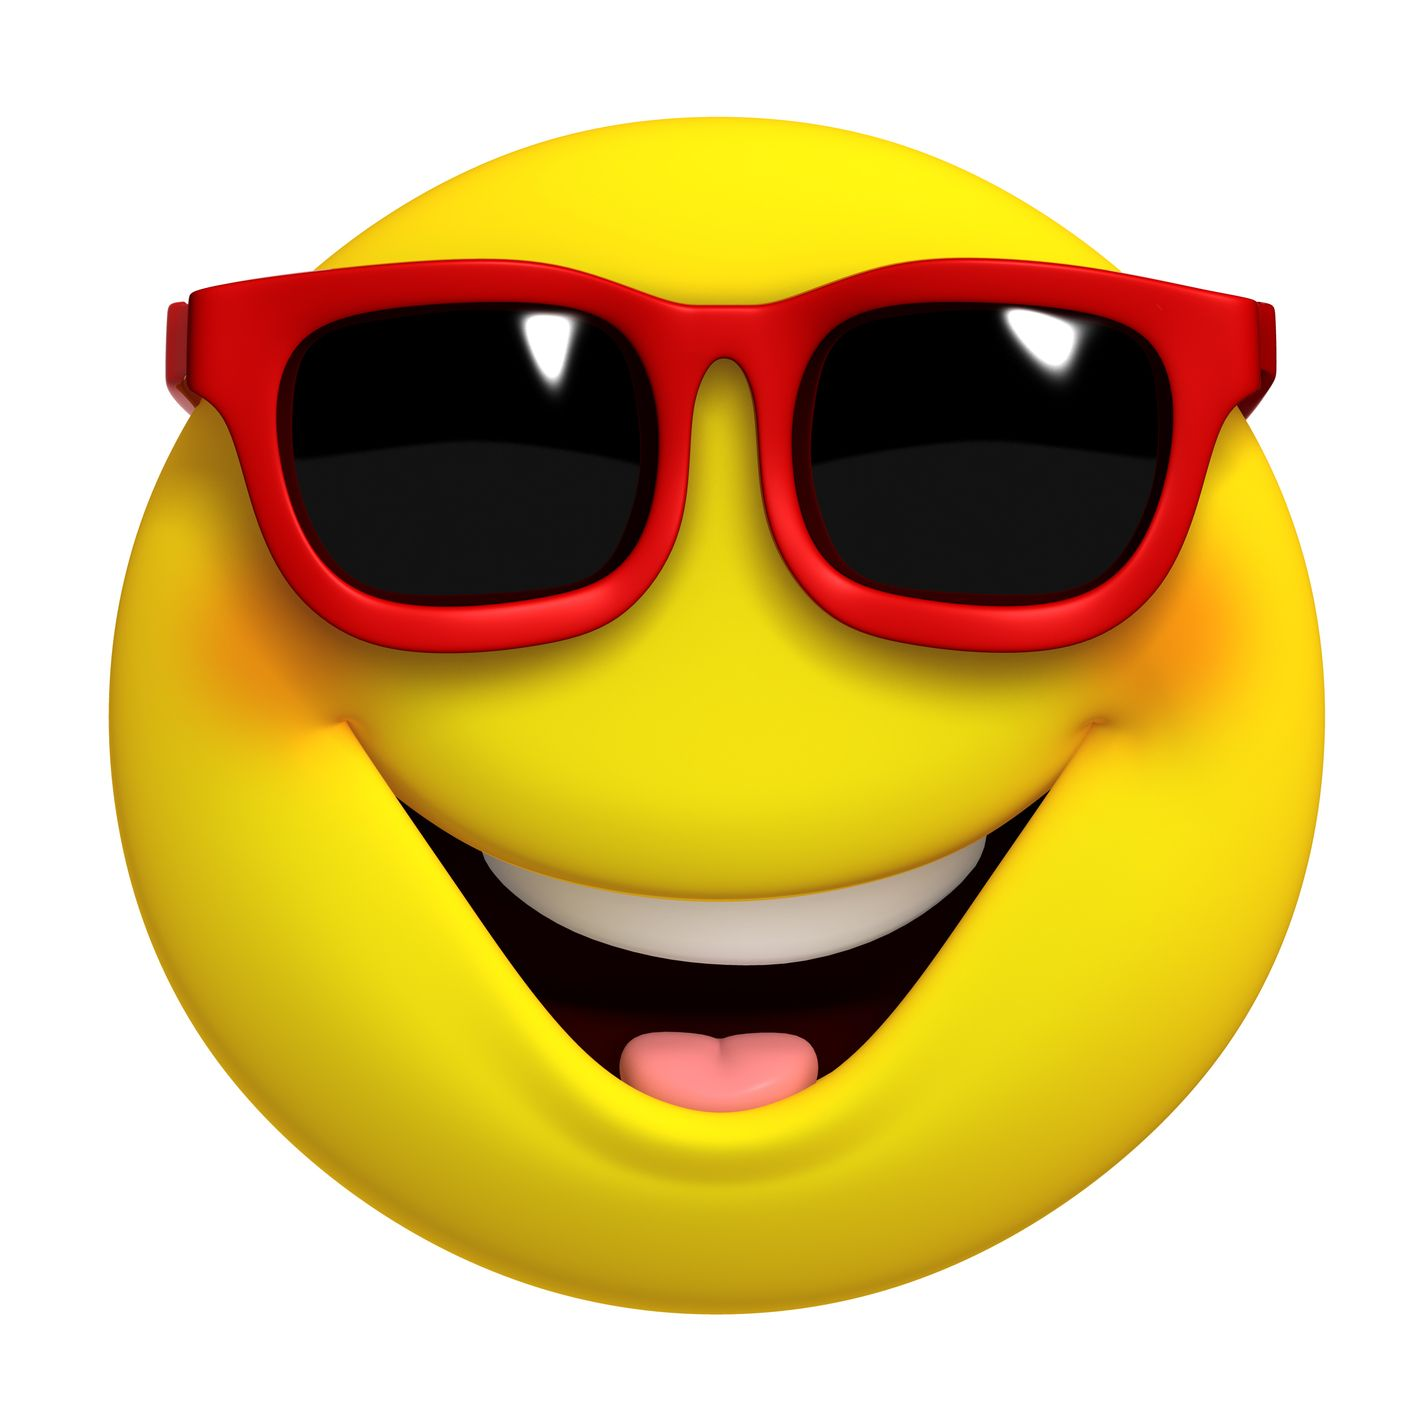 october 3 is world smile day what will you do today to help make rh pinterest com Funny Smiley Face Clip Art Laughing Smiley Face Clip Art